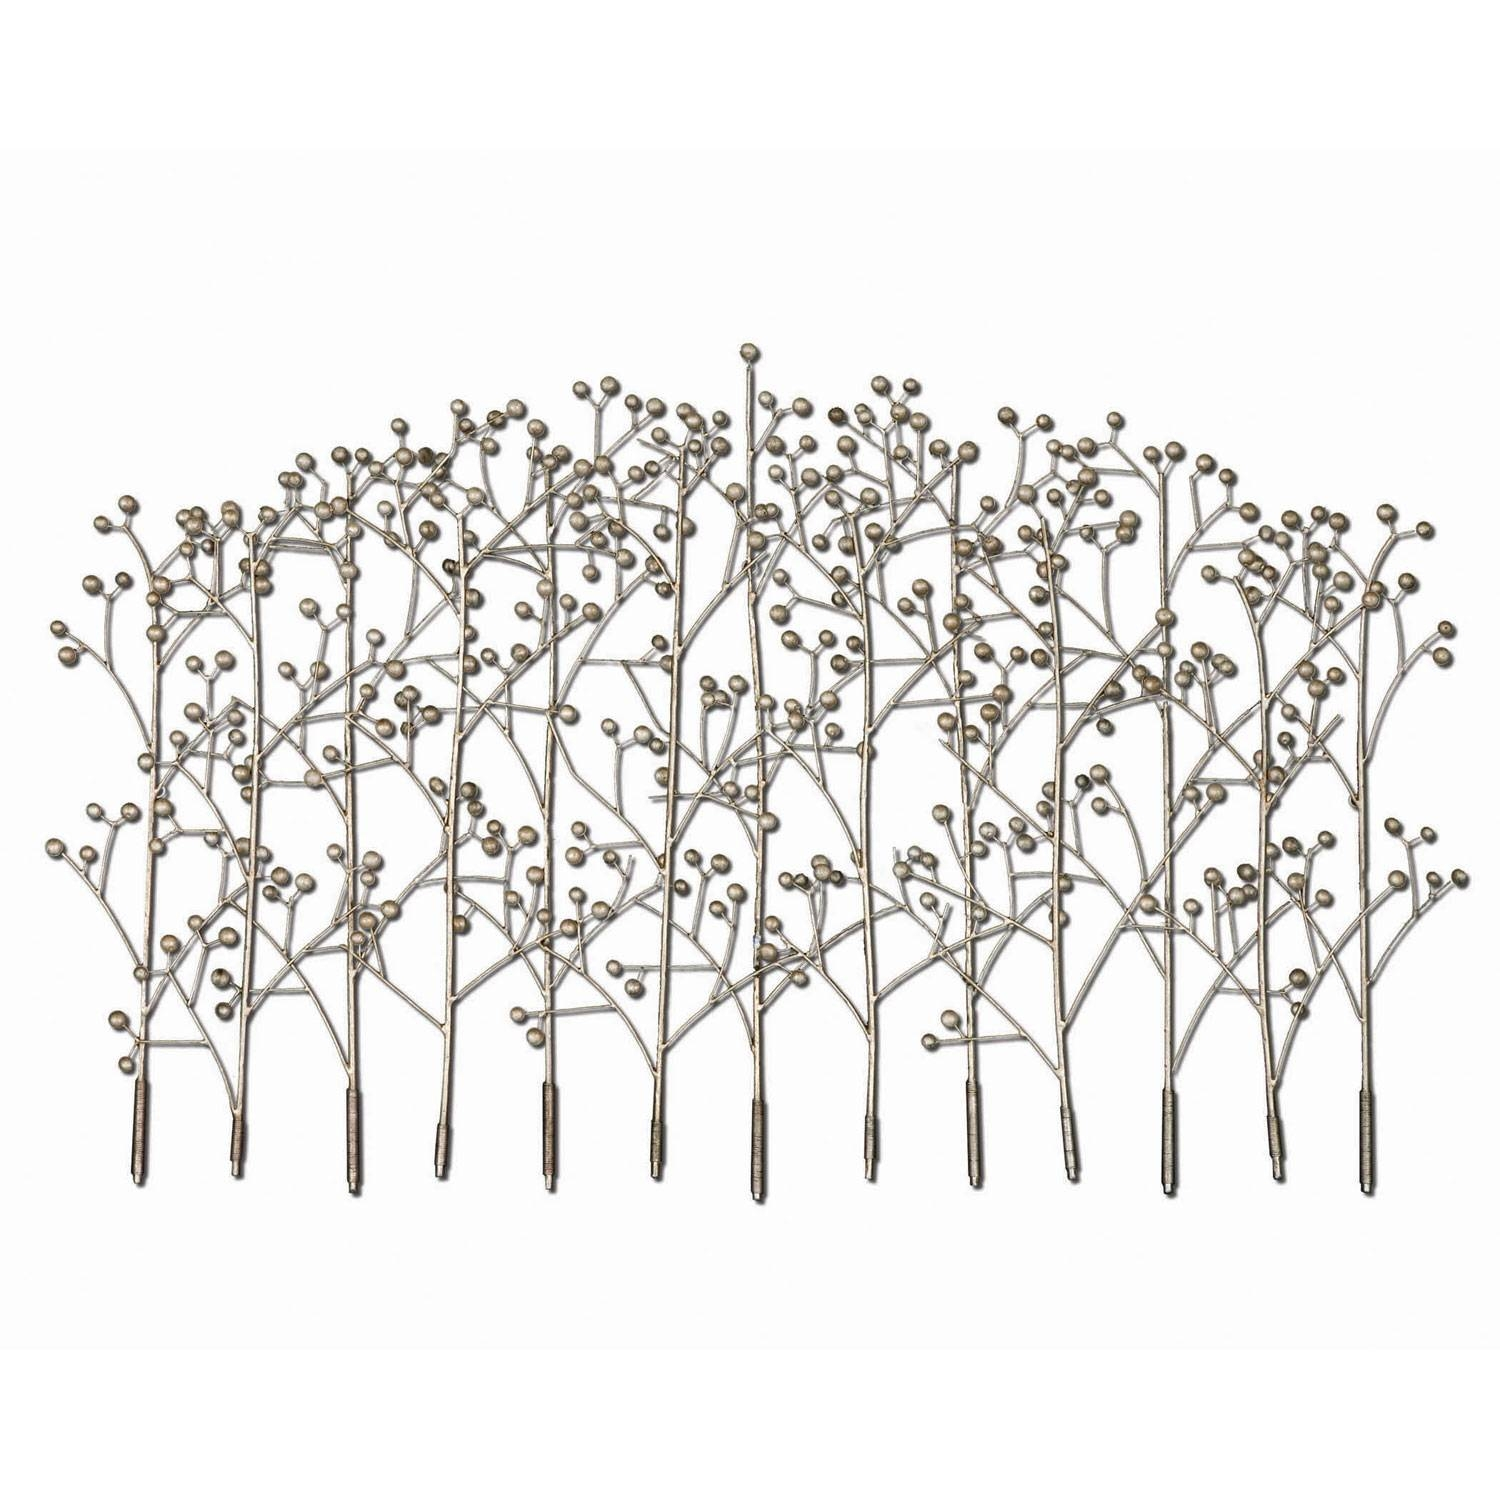 Iron Trees Metal Wall Art Uttermost Wall Sculpture Wall Decor Home With Latest Metal Wall Art Tree (View 3 of 20)